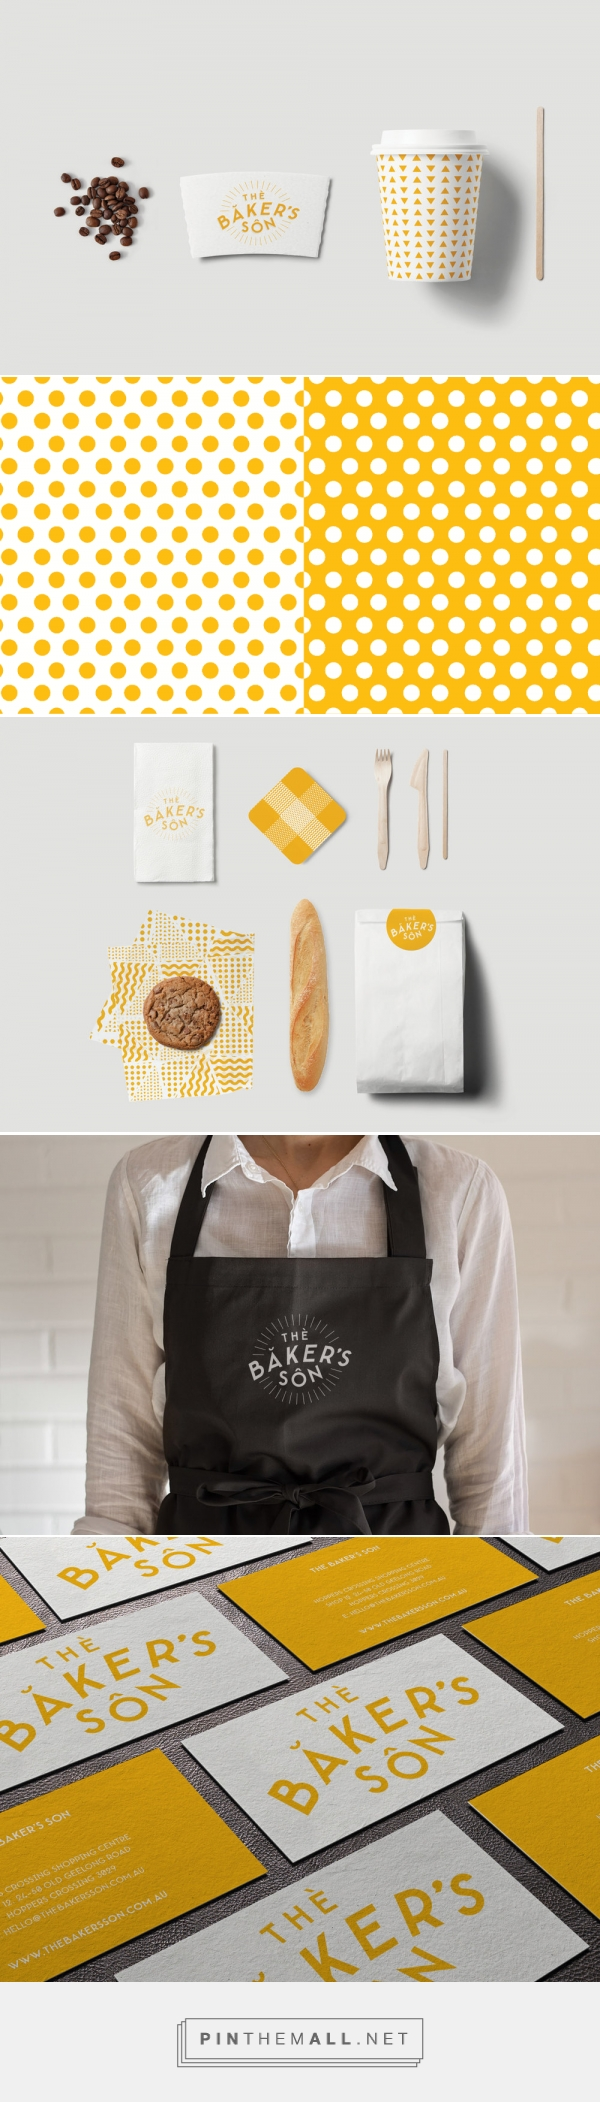 The Baker's Son's Brand Design Agency | BrandWorks... - a grouped images picture - Pin Them All